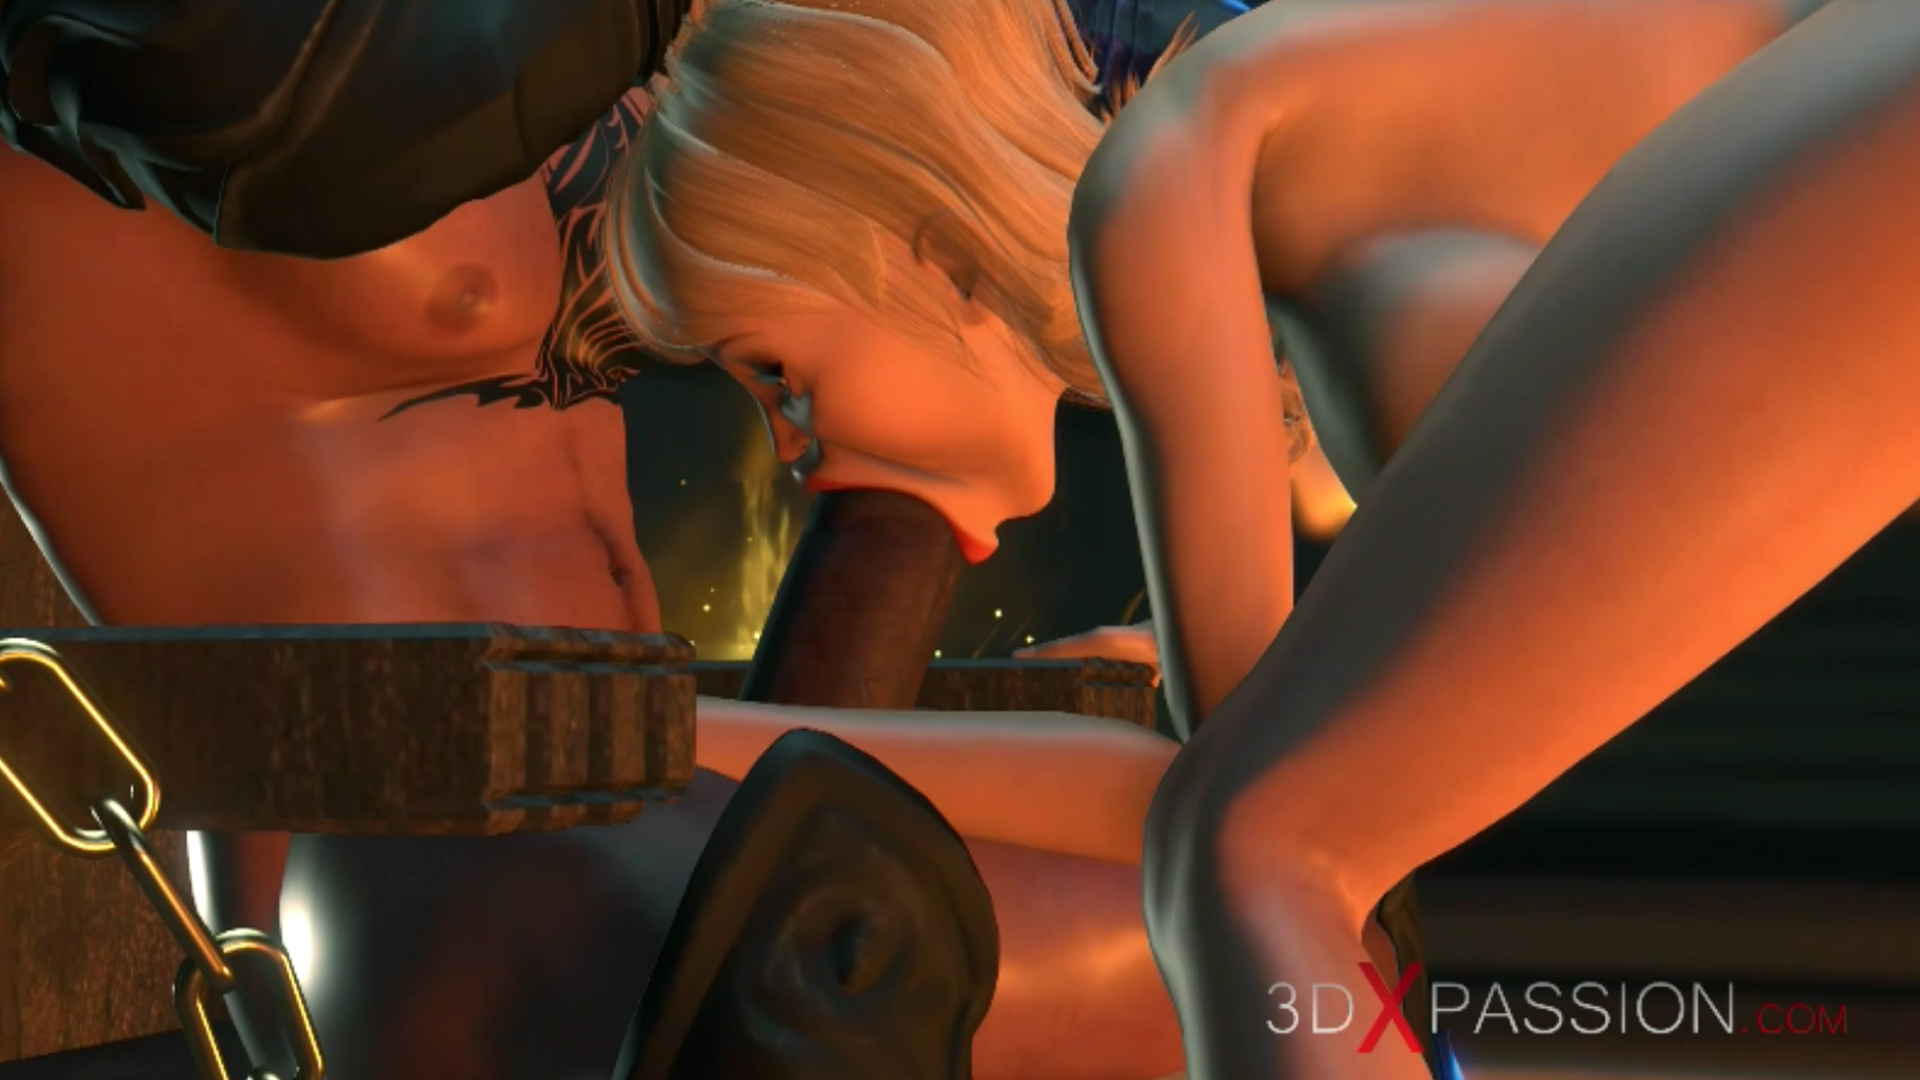 Blonde giving blowjob to fire demon in castle